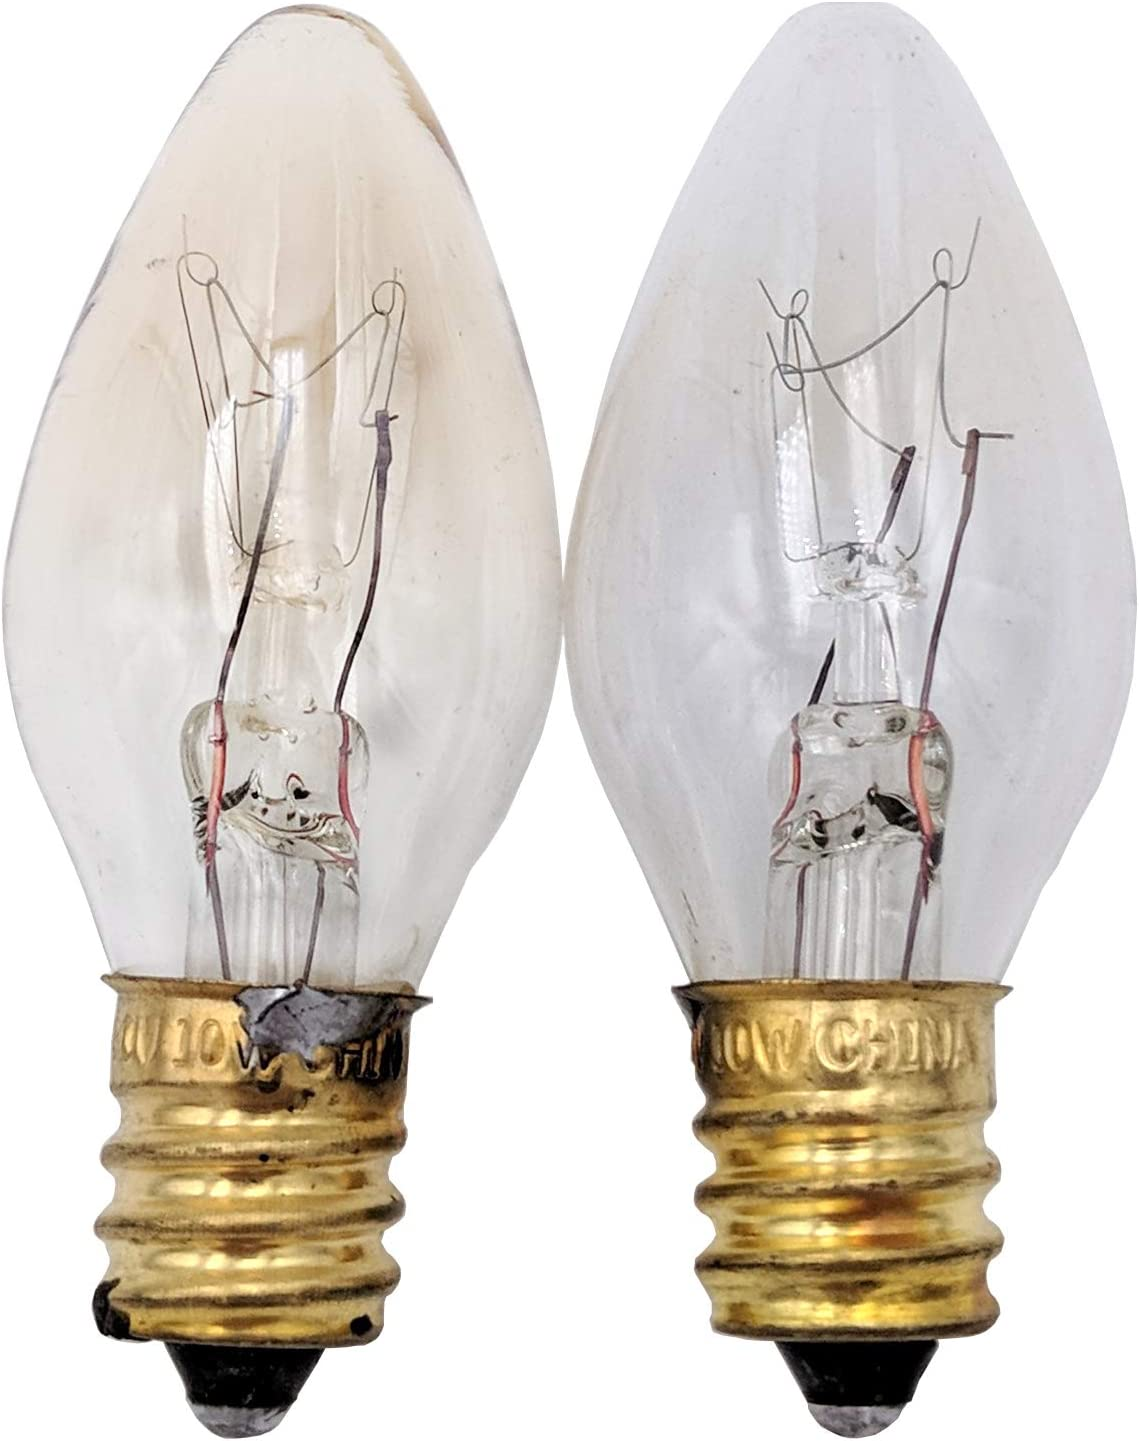 Supplying Demand 22002263 10 Watt 120 Volt Appliance Light Bulb 2 Pack